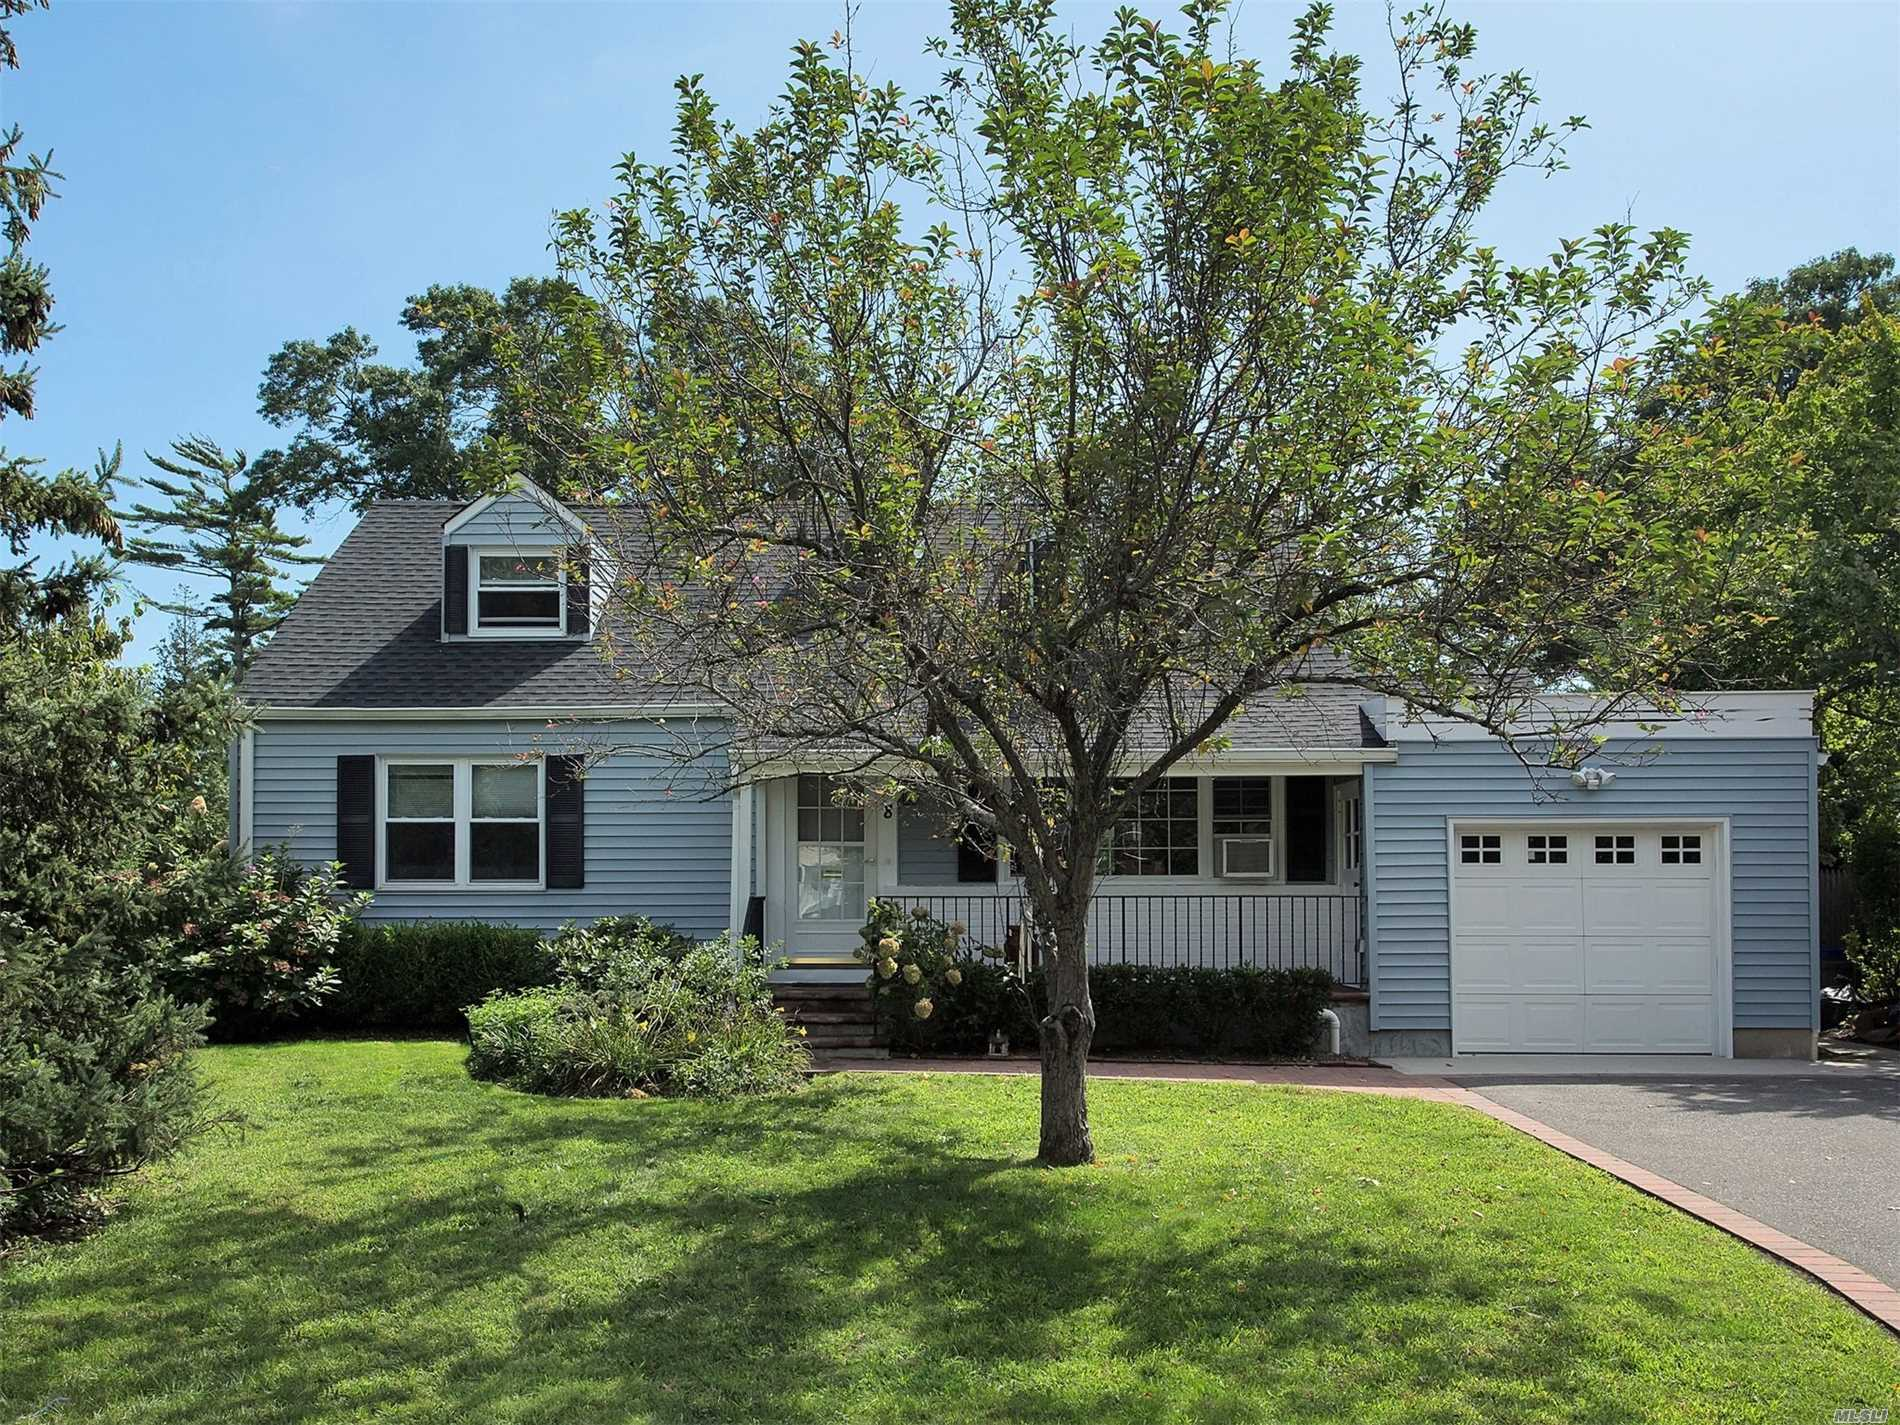 Must See This South Of Montauk 4 Bdrm/2 Bth Cape. Very Inviting. Warm And Bright. . All Hard Wood Floors. Beautifully Landscaped/ Private Bk Yard.  Assoc. Docking. Comes With Your Own Slip. X Zone